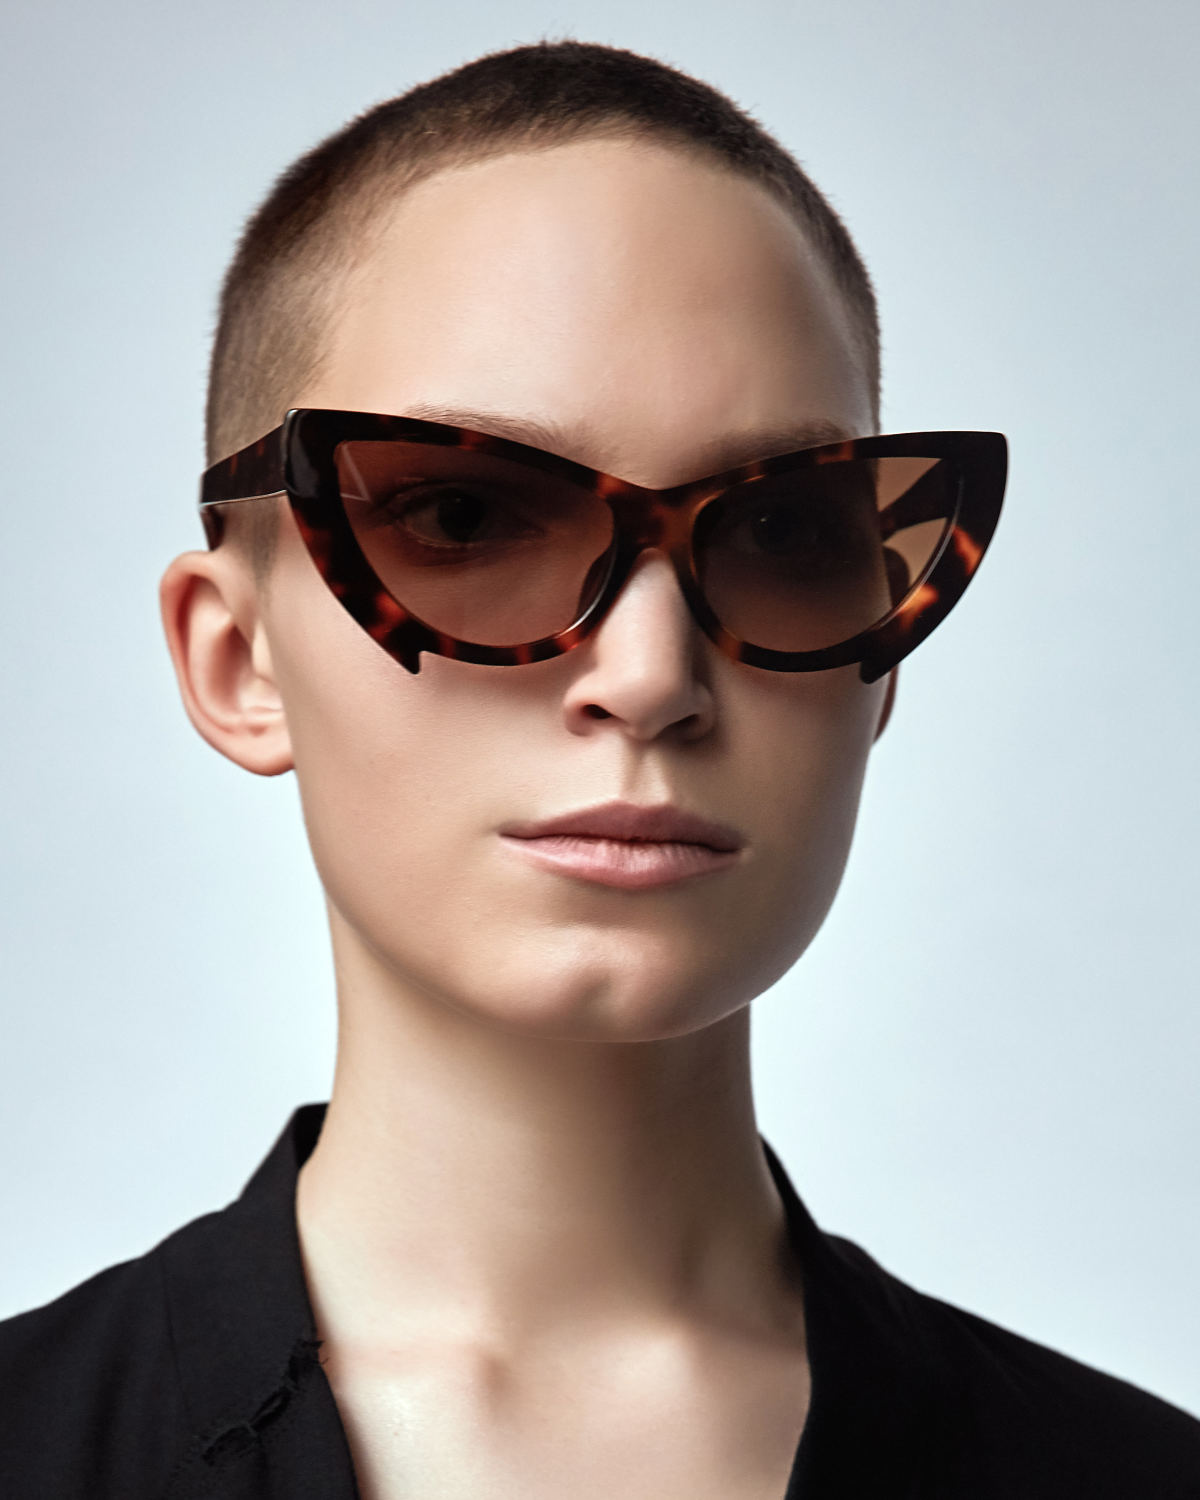 FAKBYFAK Fashion sunglasses Black Mantis Model 2. Tortoise Code: 02/02/02